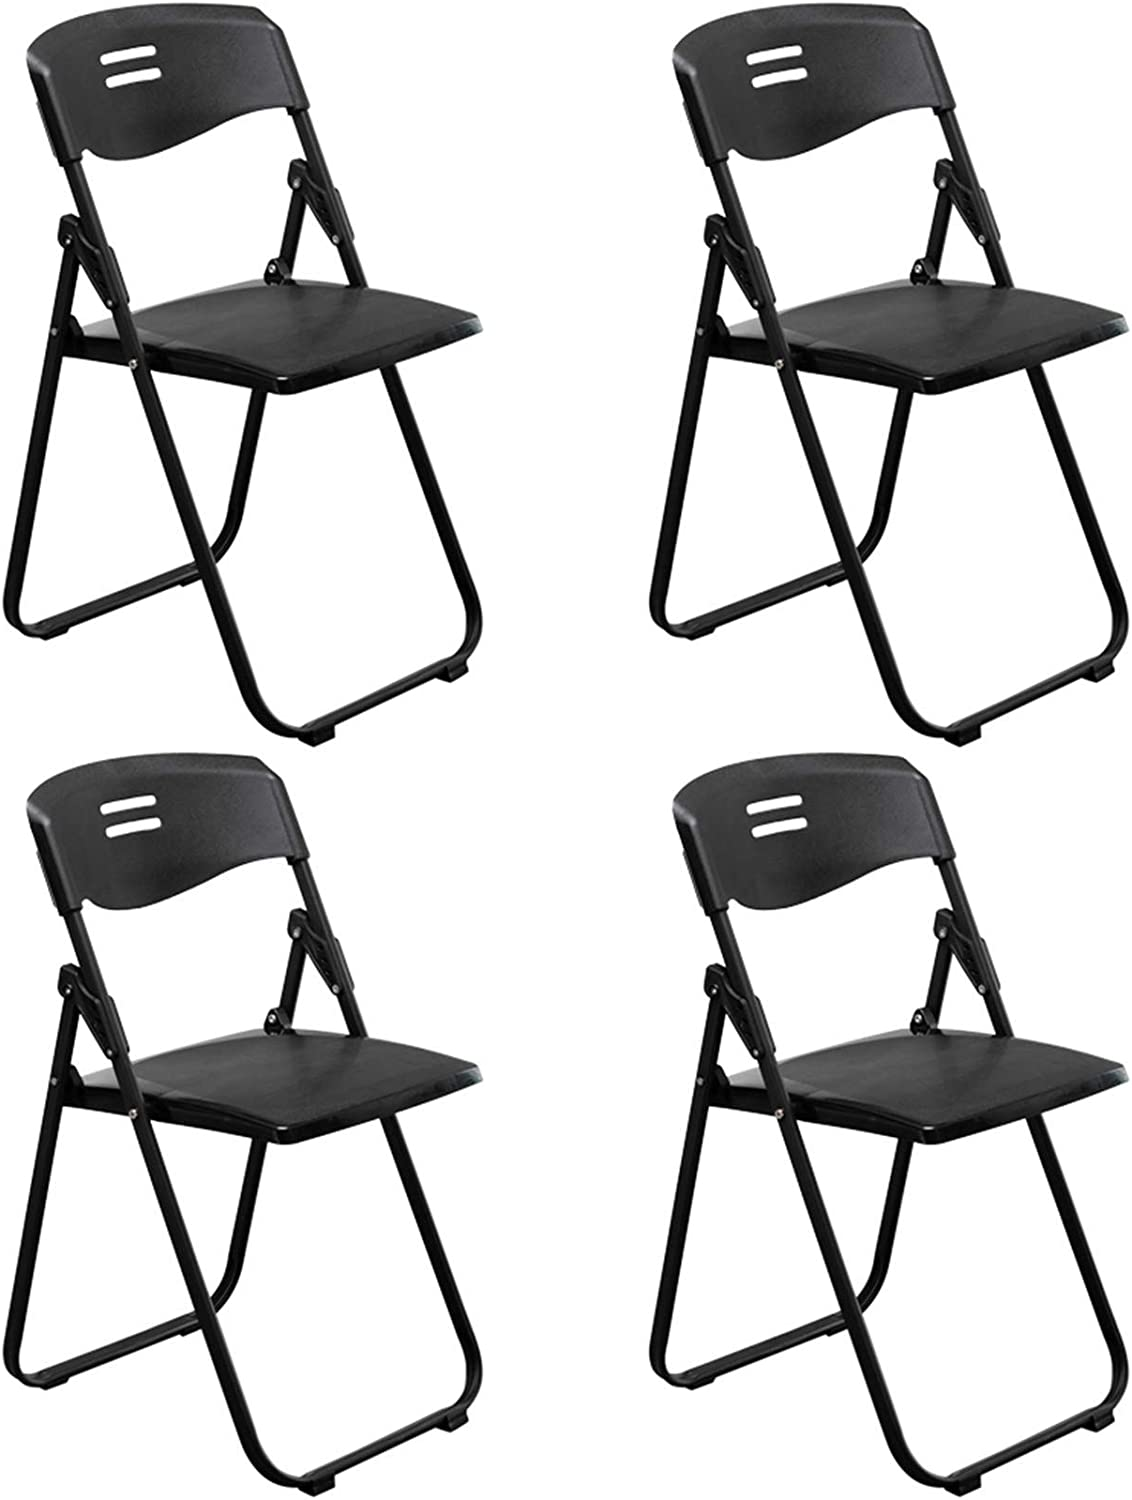 BRLUCKY Home HomeLiving 4pcs Office Conference Max 89% OFF Super popular specialty store Plastic Folding C